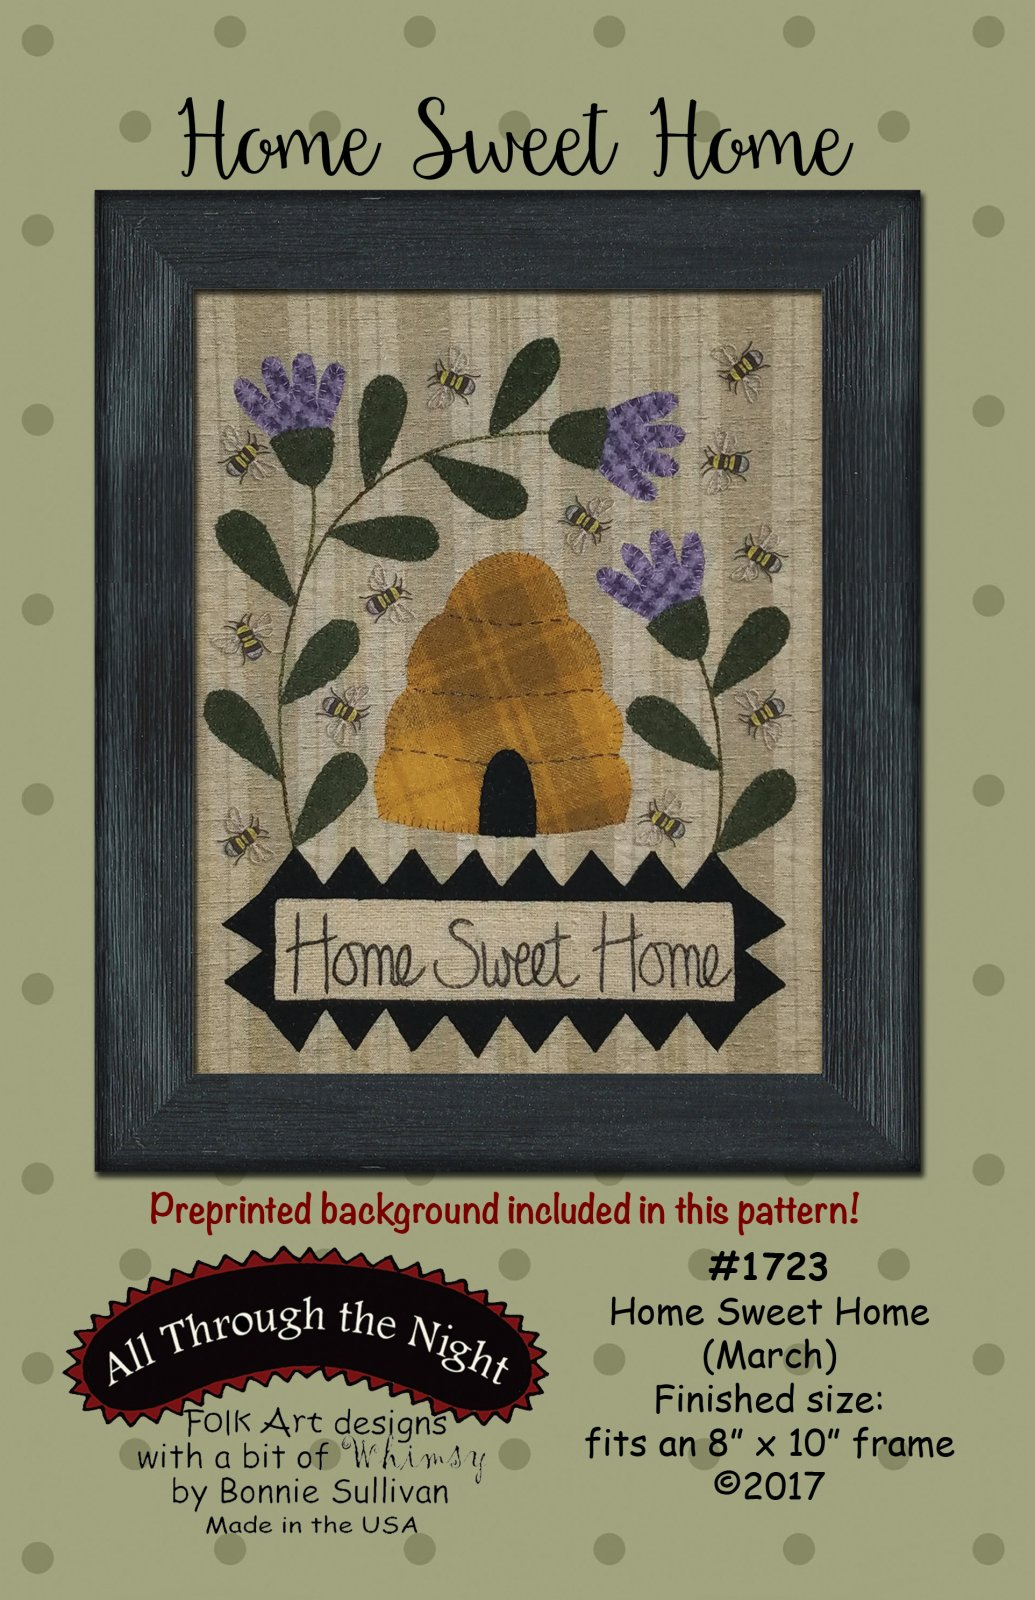 1723 Home Sweet Home (March)